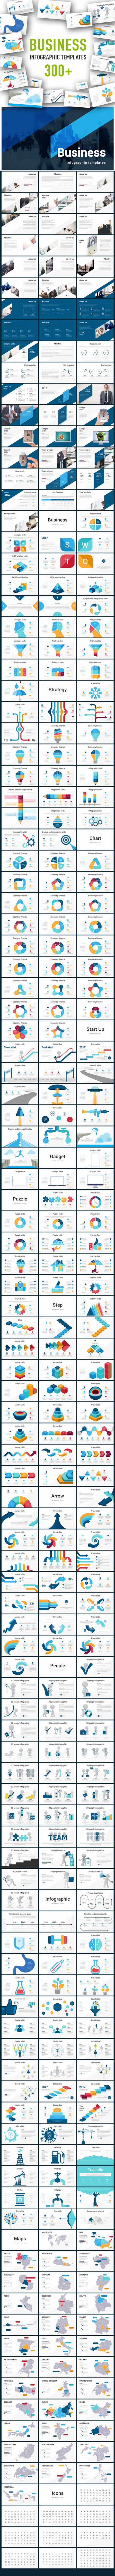 Business Infographic templates Max 2.0 - PowerPoint - 300+ Total Slides